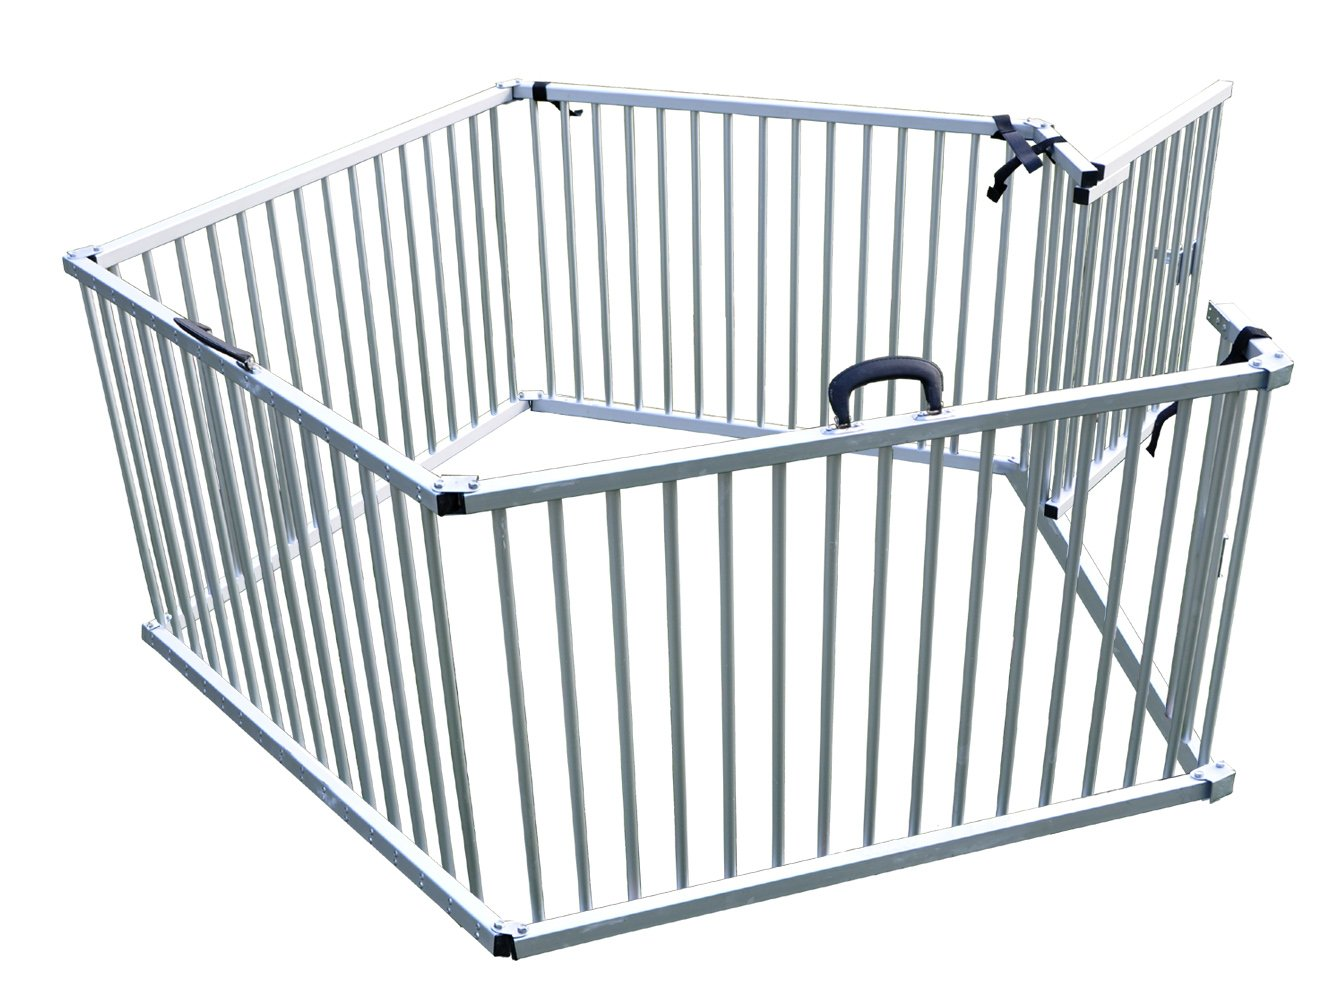 Cool Runners Secure Aluminum Portable Expandable Pet Enclosure 5 Sections (25''H x 30''L per Section) Lightweight & Collapsible